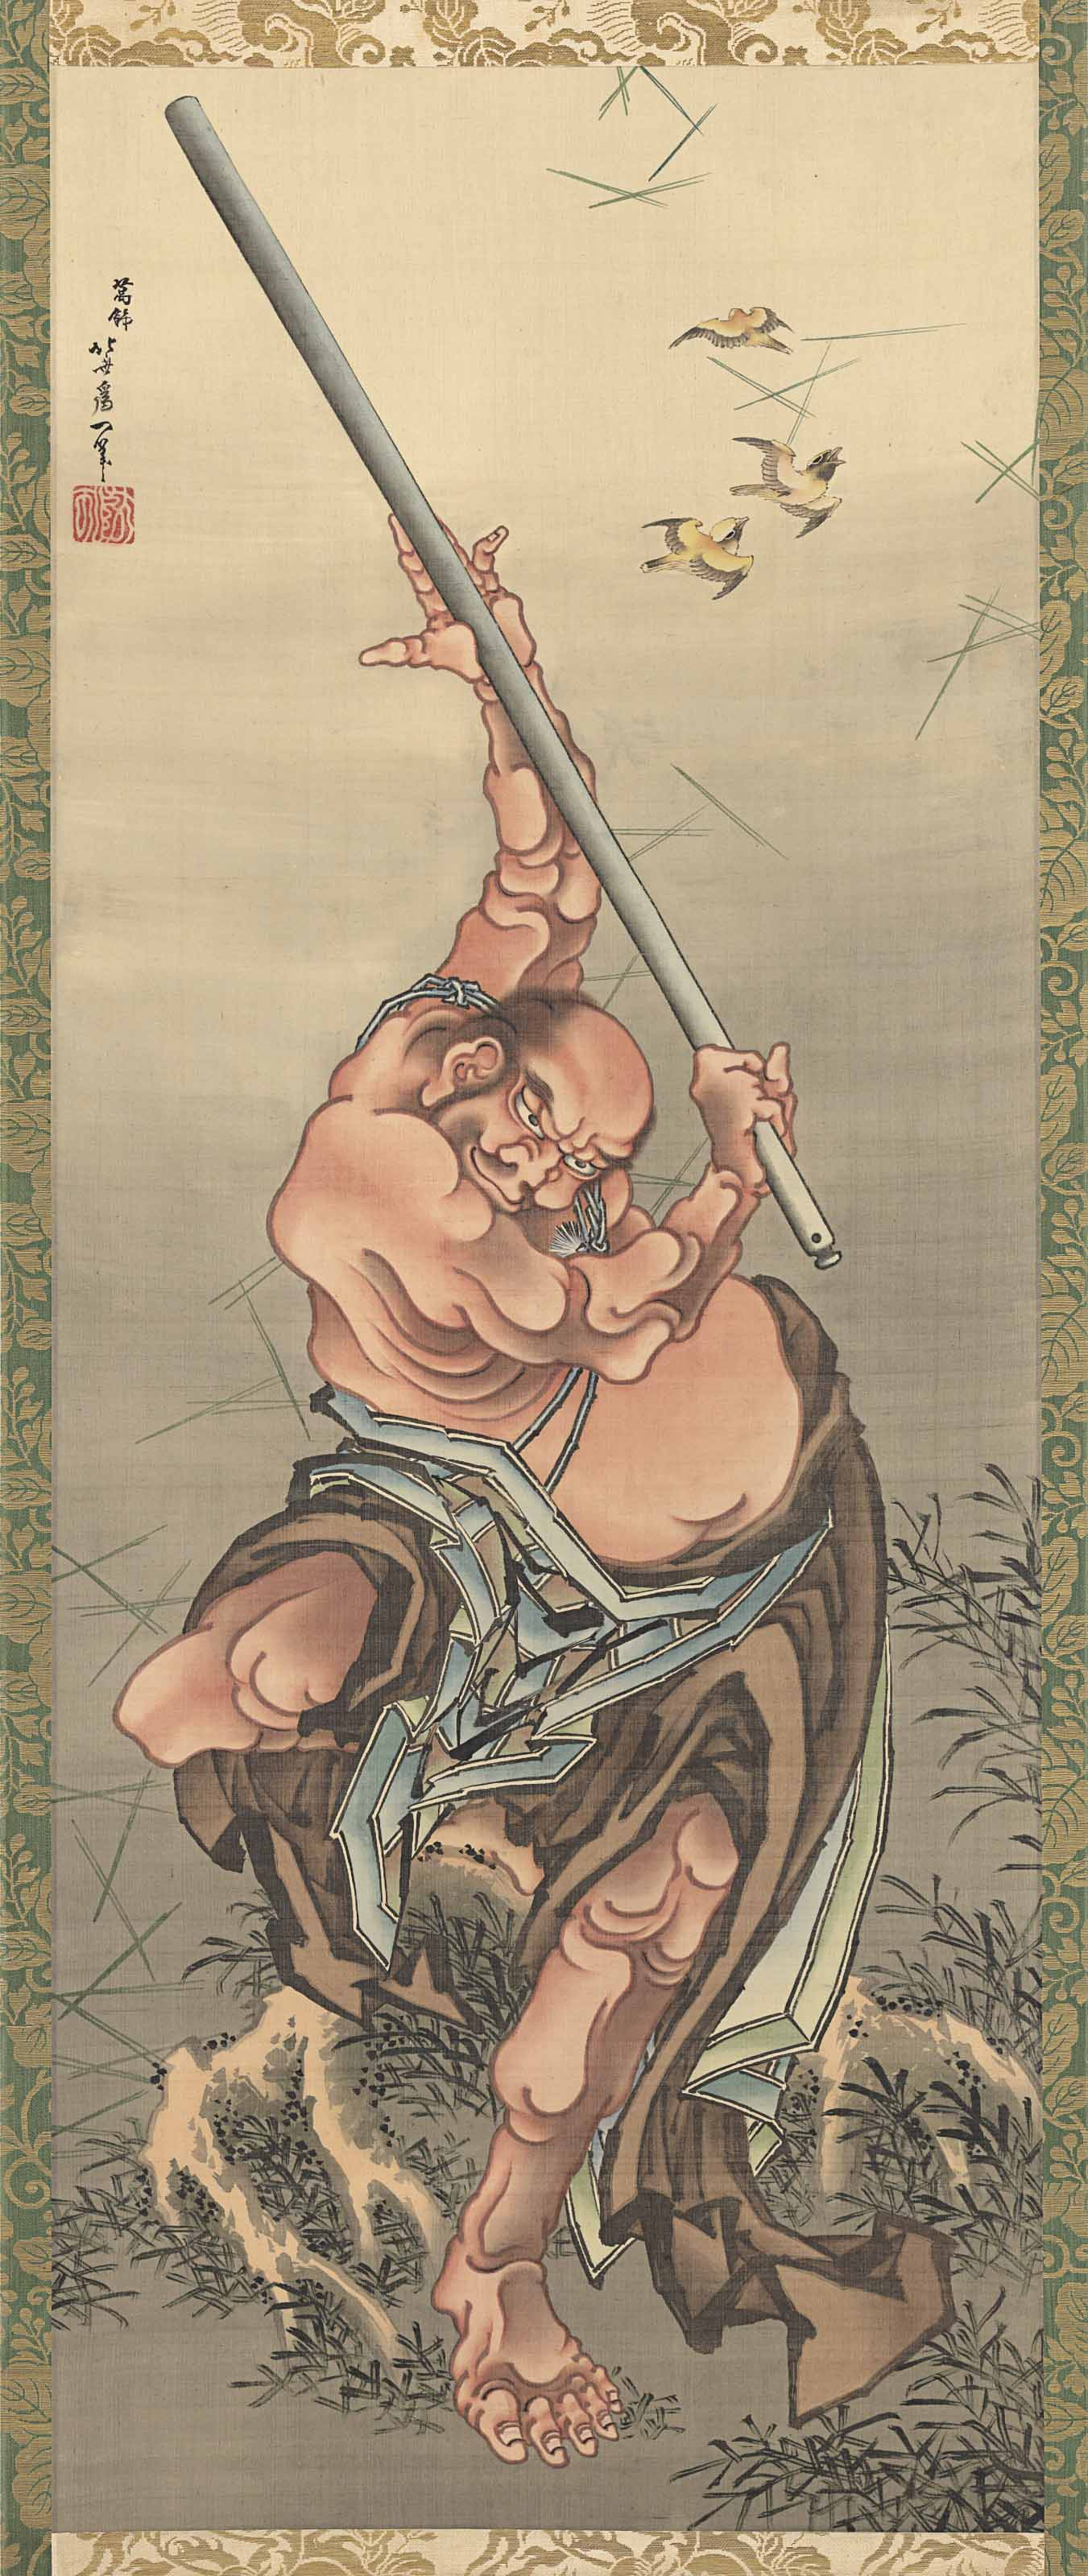 Katsushika Hokusai (1760-1849), Lu Zhishen, Bandit Hero from the Chinese Novel 'Outlaws of the Marsh'. Wood storage box sealed Seiso Ozu Shi Shinsho Zo Fukuki for Ozu Keizo (1804-1858). 41½ x 16⅝  in (105.5 x 42.4 cm). Sold for $432,500 on 18 April 2018 at Christie's in New York